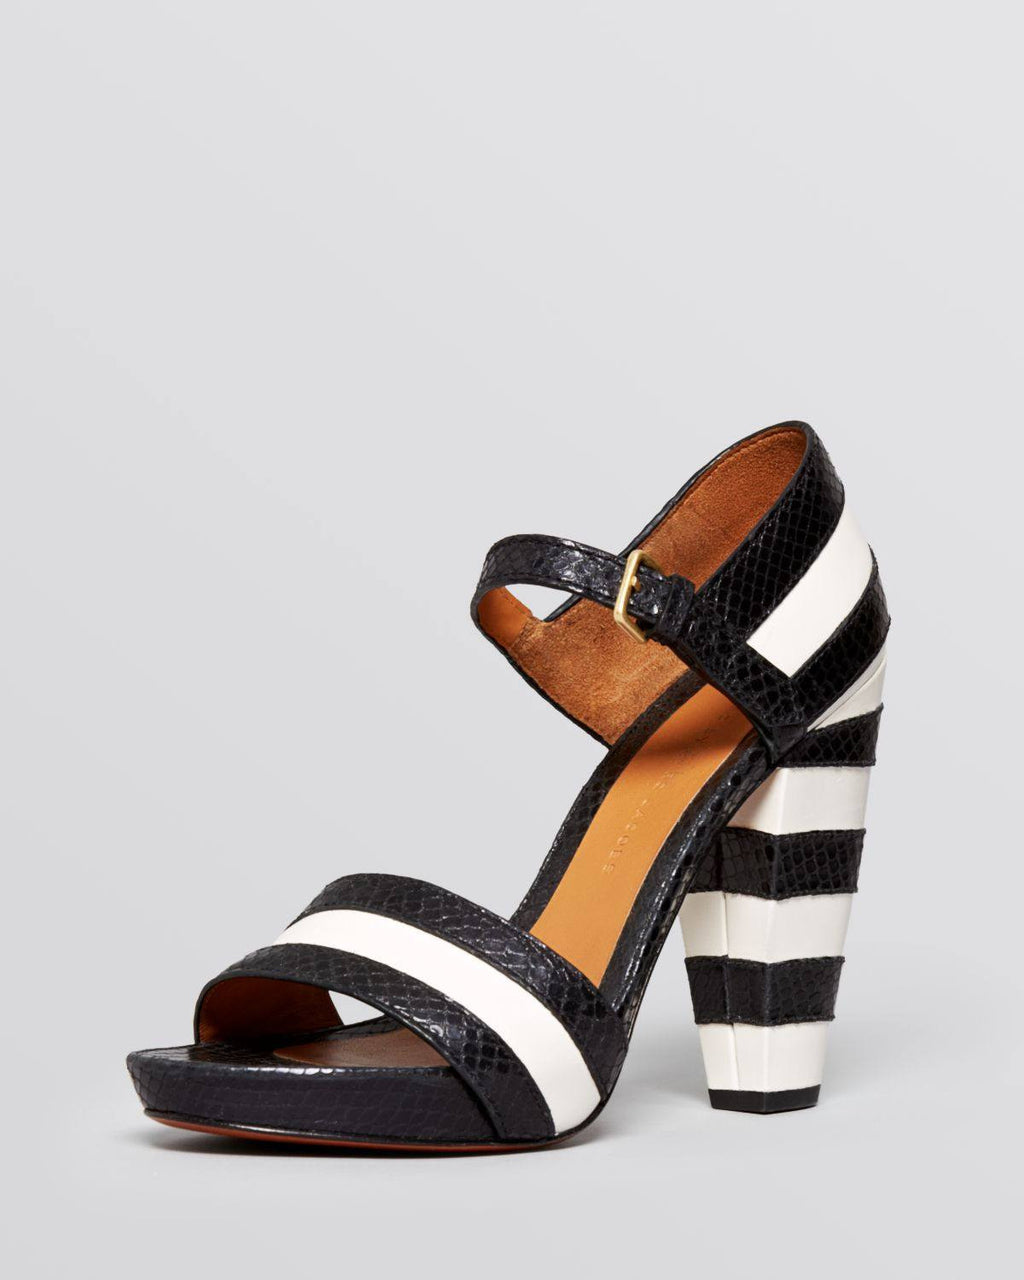 387aeb02948f69 MARC by Marc Jacobs Black Open Toe Platform Sandals Snakeembossed Striped High  Heel-MARC BY